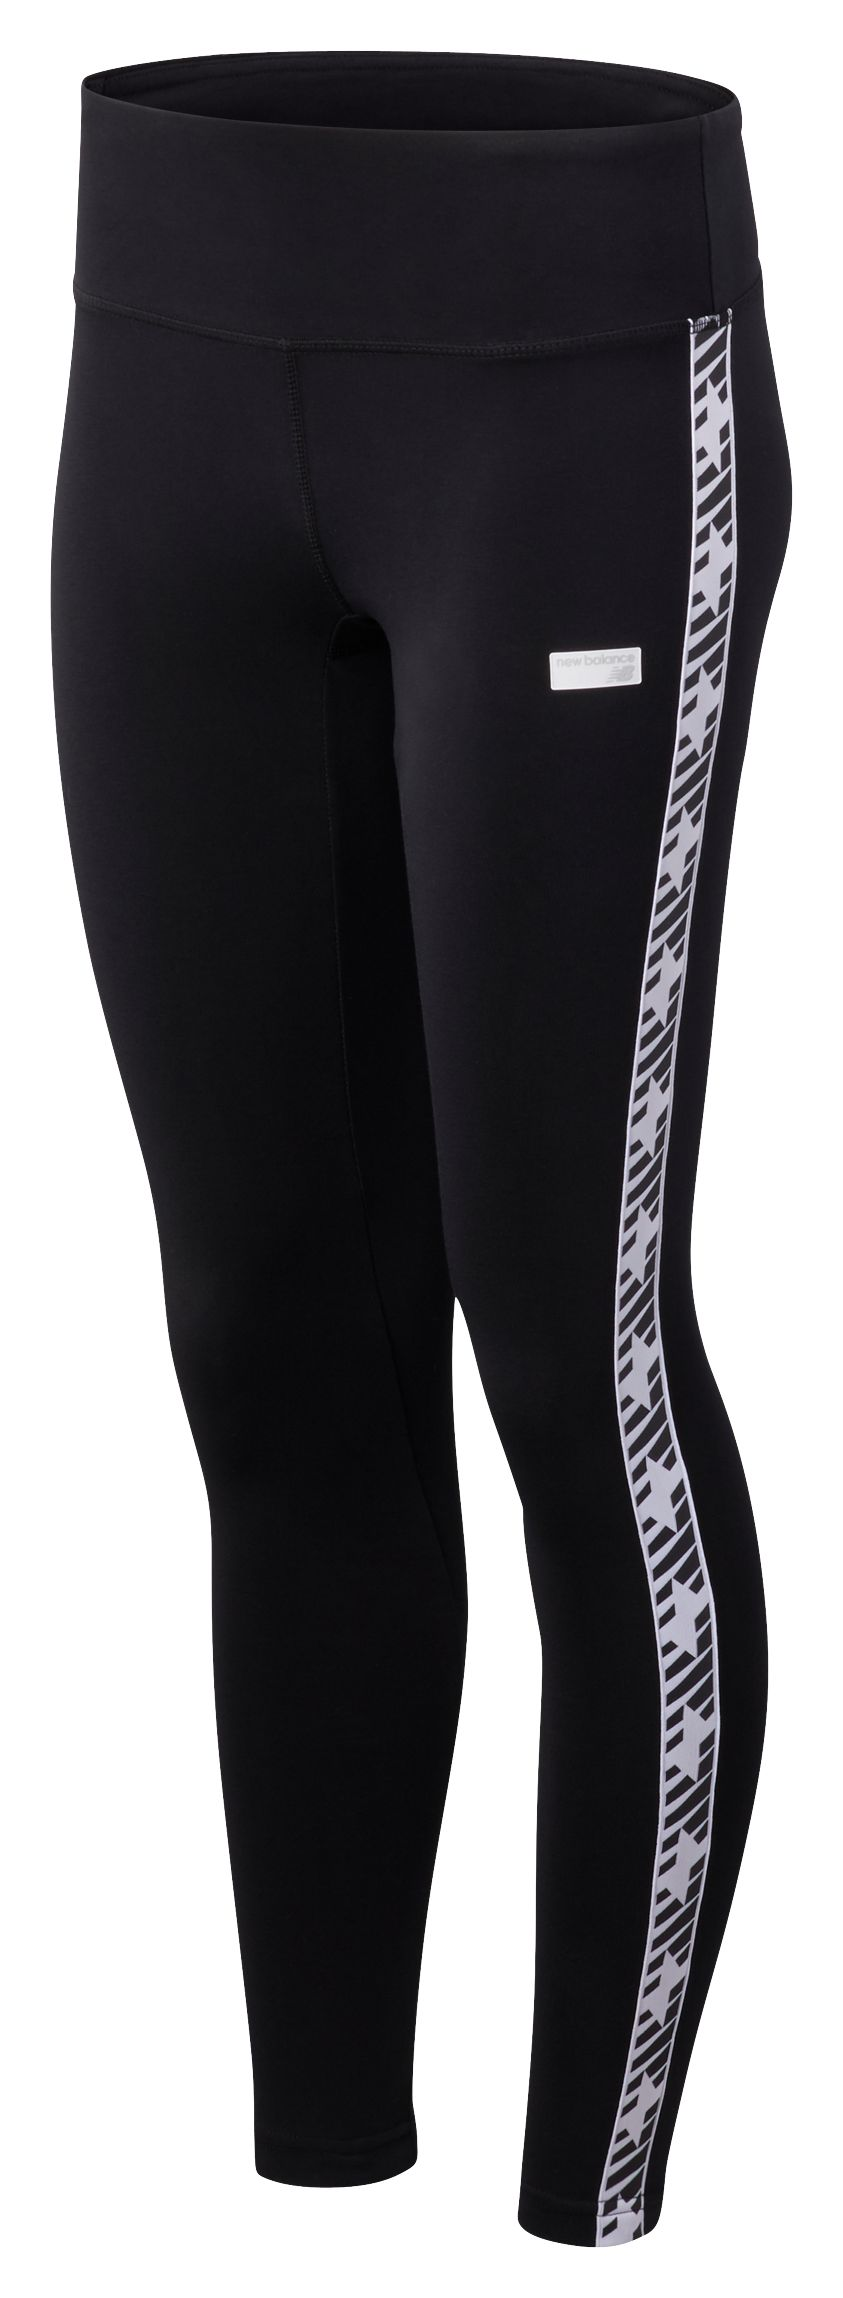 Women's NB Athletics Classic Logo Legging